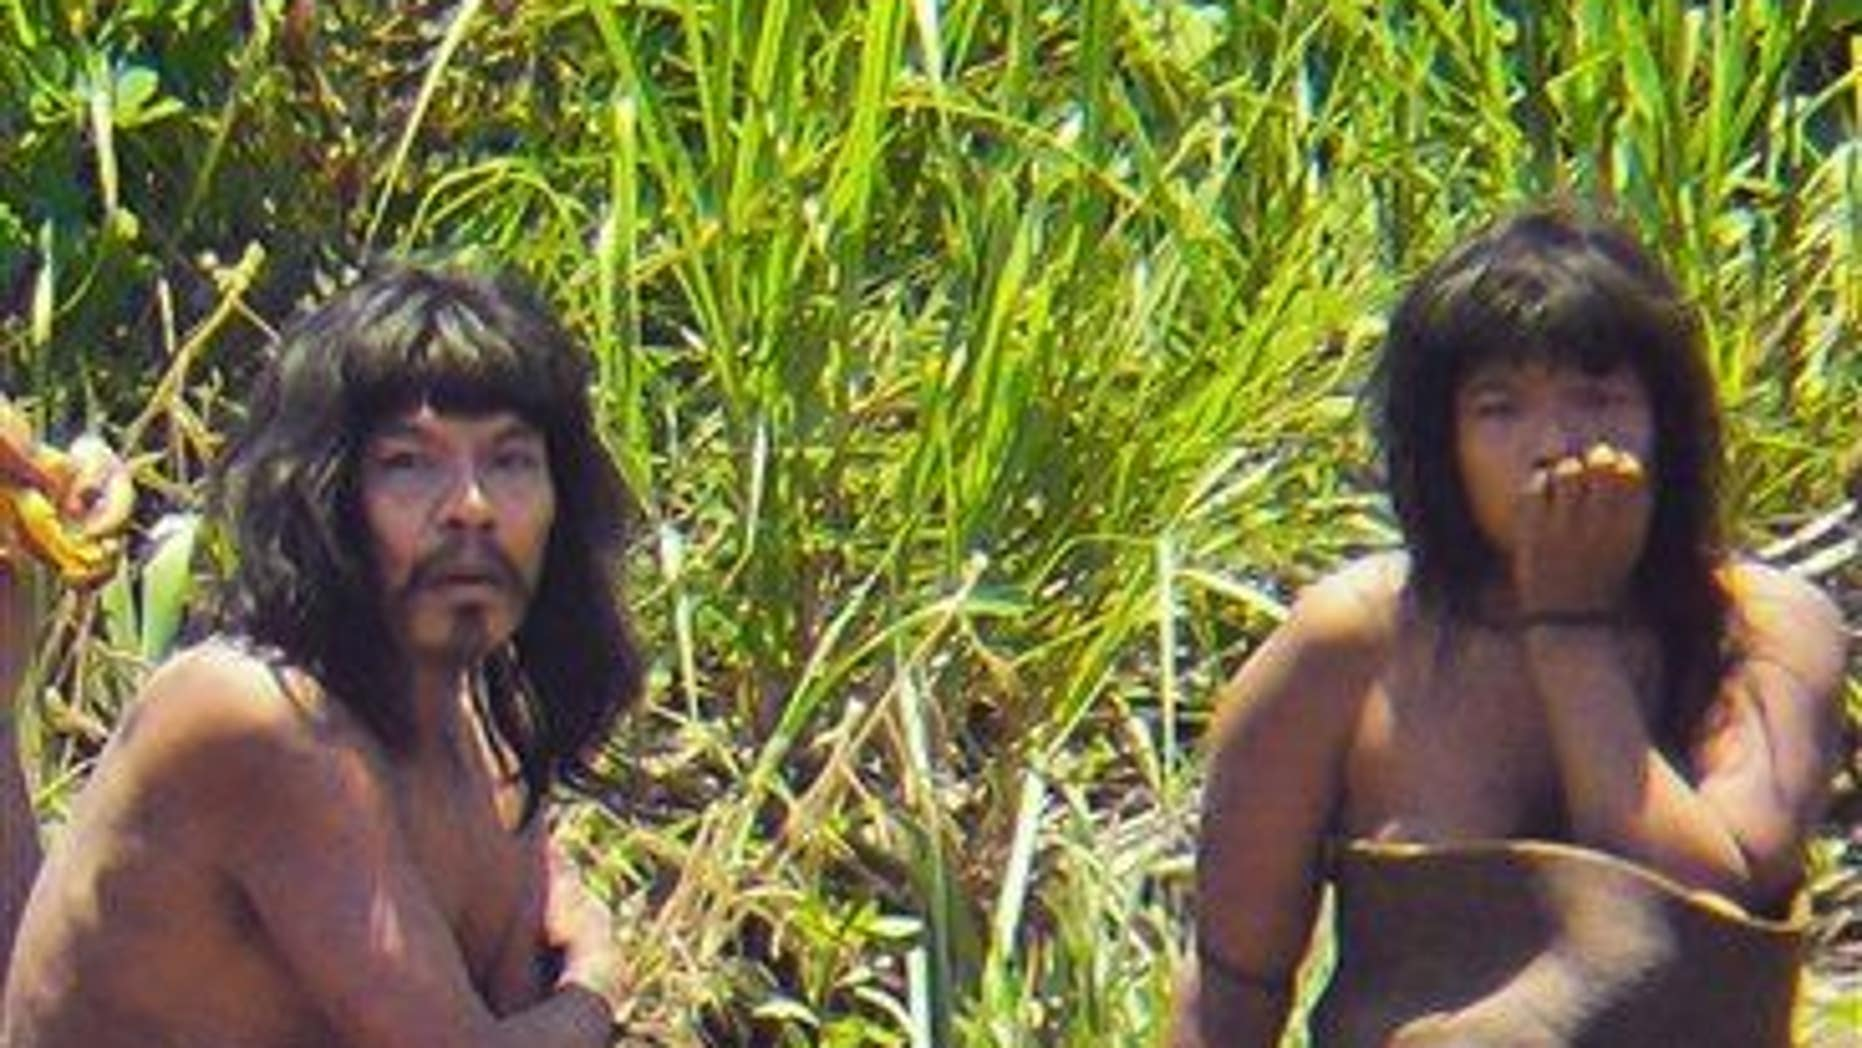 This 2011 photo shows members of the Mashco Piro tribe, photographed at an undisclosed location near the Manu National Park in southeastern Peru.